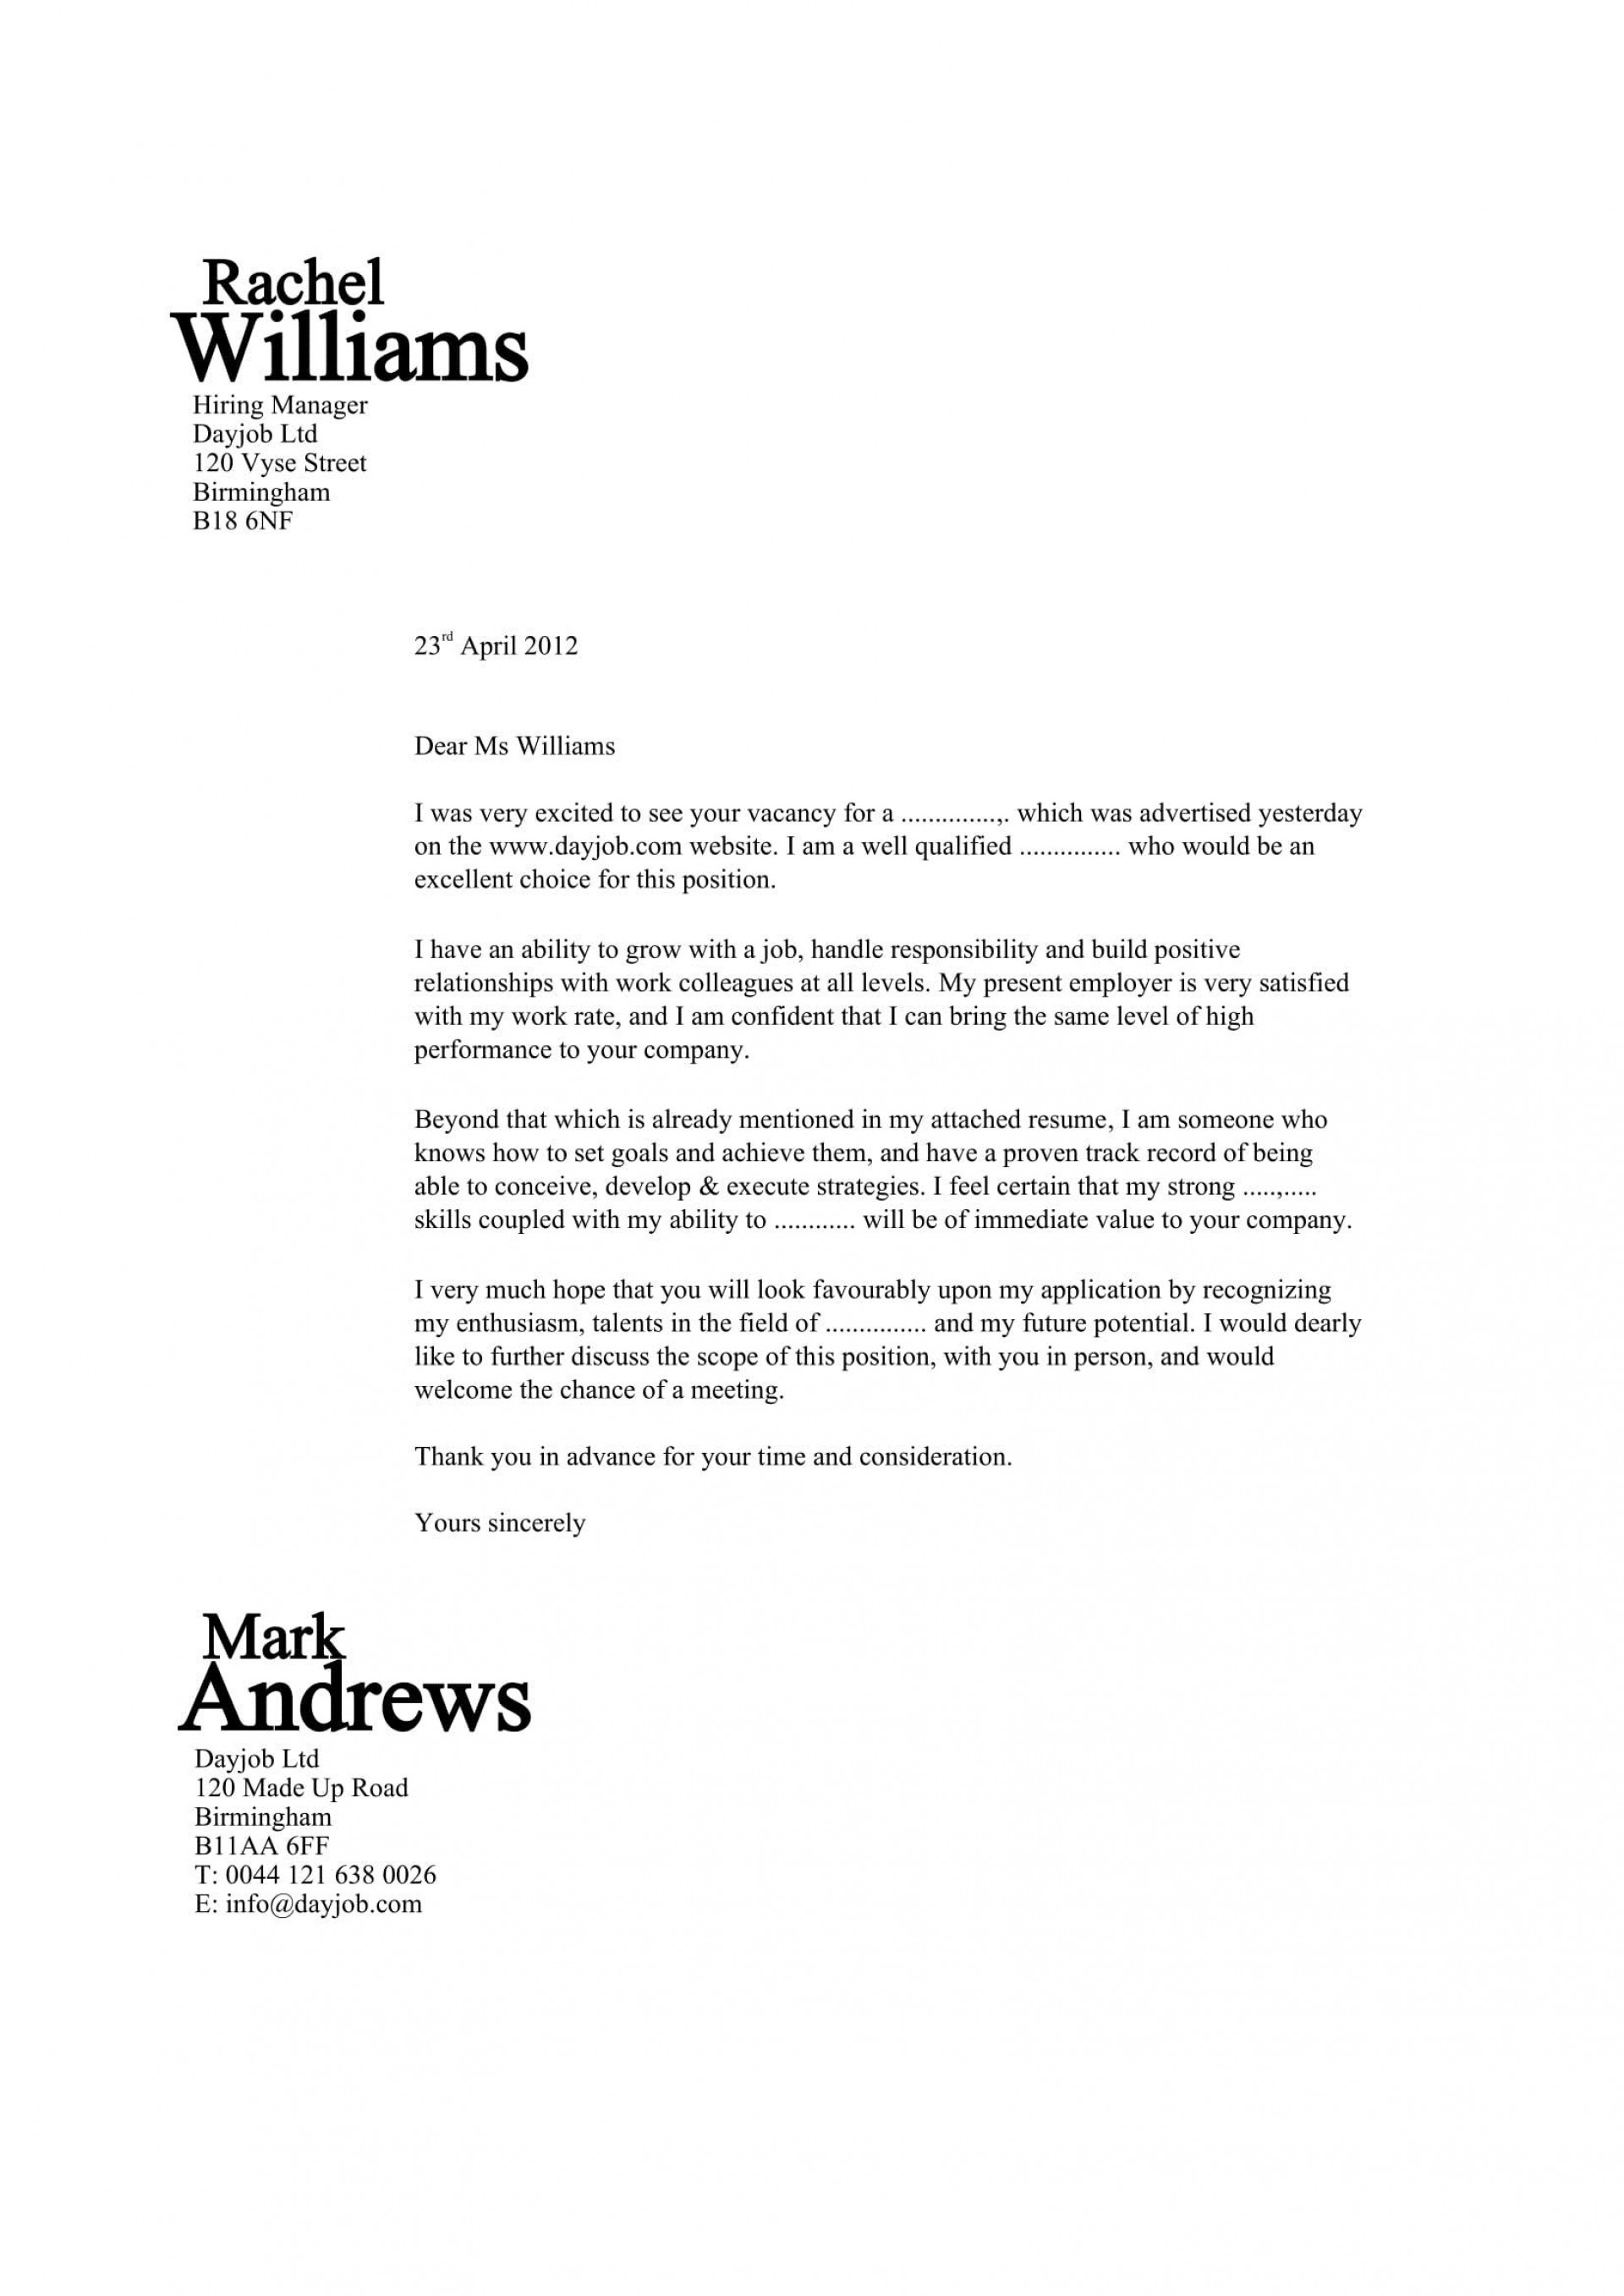 007 Beautiful Best Covering Letter Example Sample  Examples Uk1920